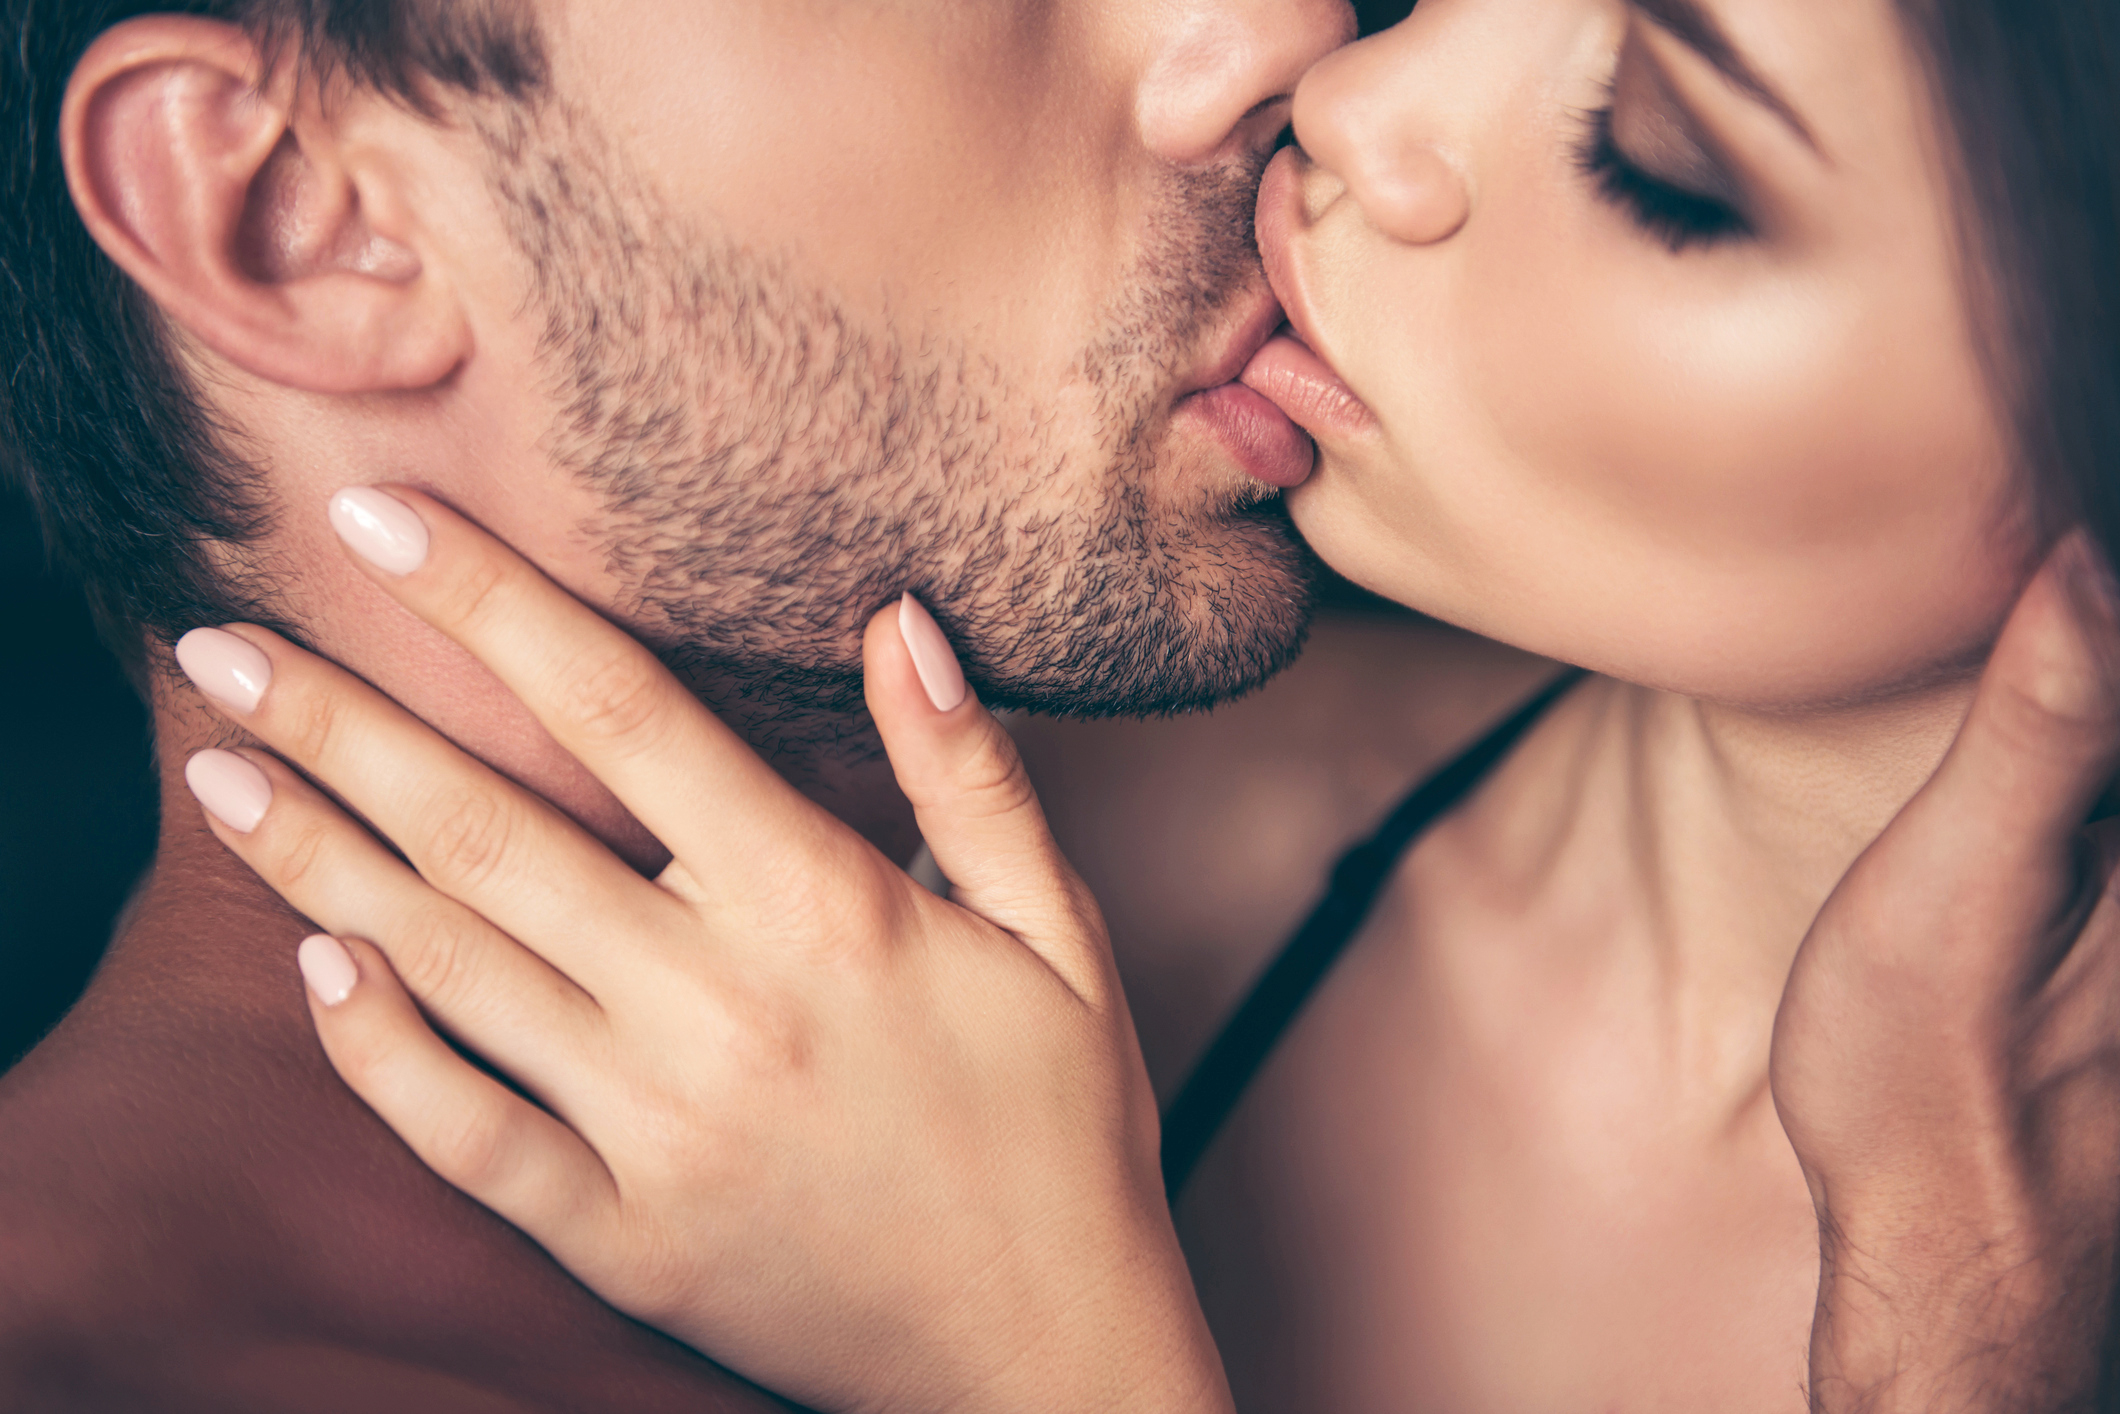 How To French Kiss In 7 Easy Steps Lovetoknow